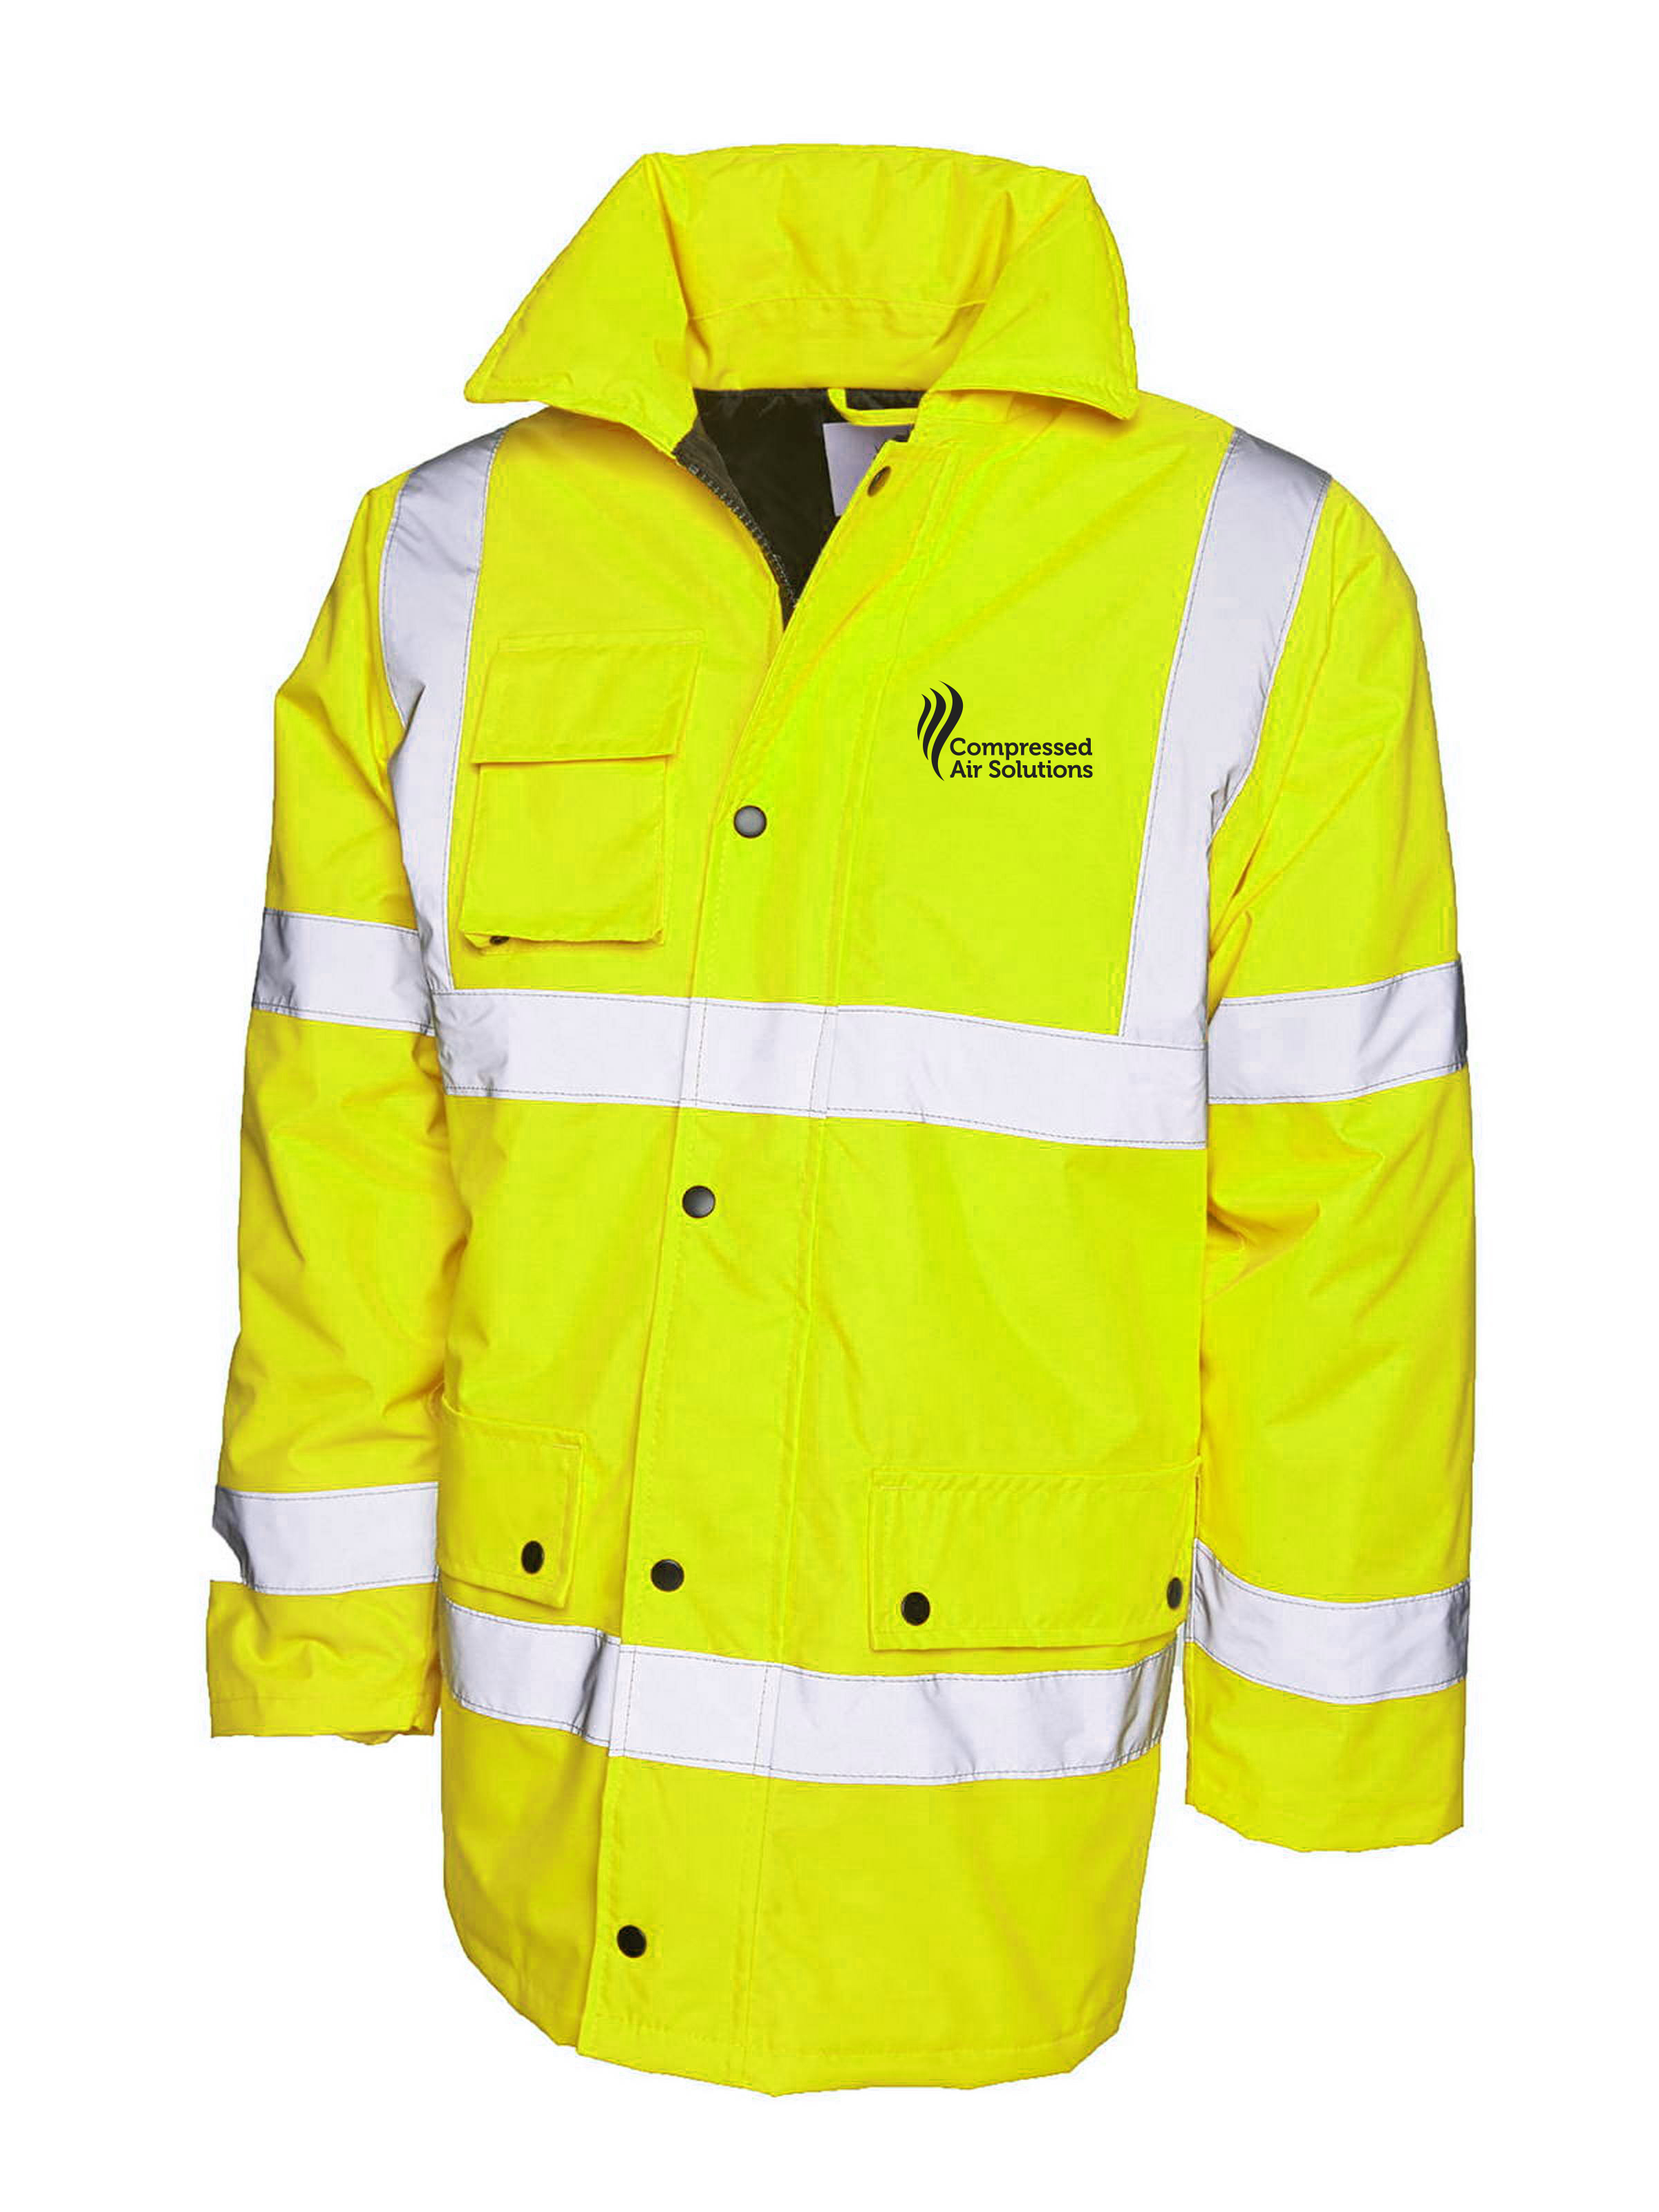 Offer! - 12 Printed Site Jackets for £234.95